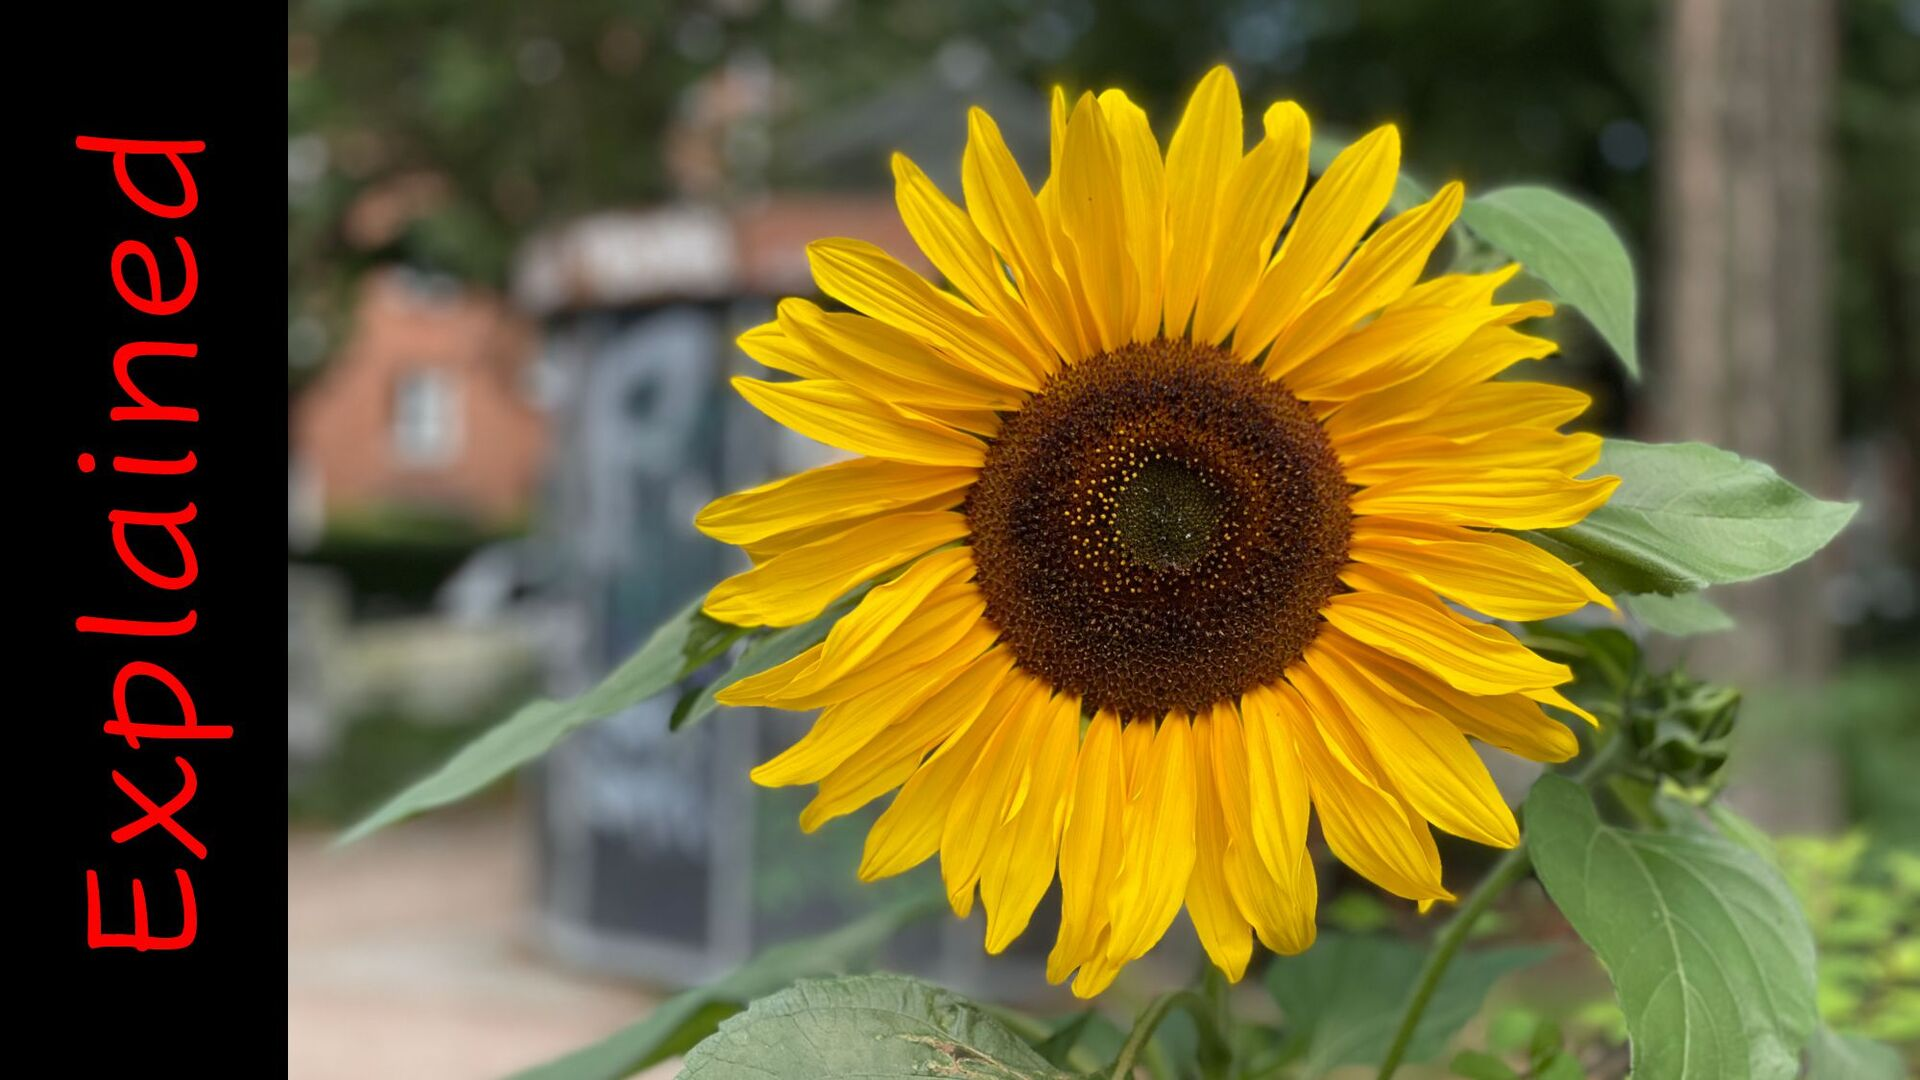 Collaborative Modeling